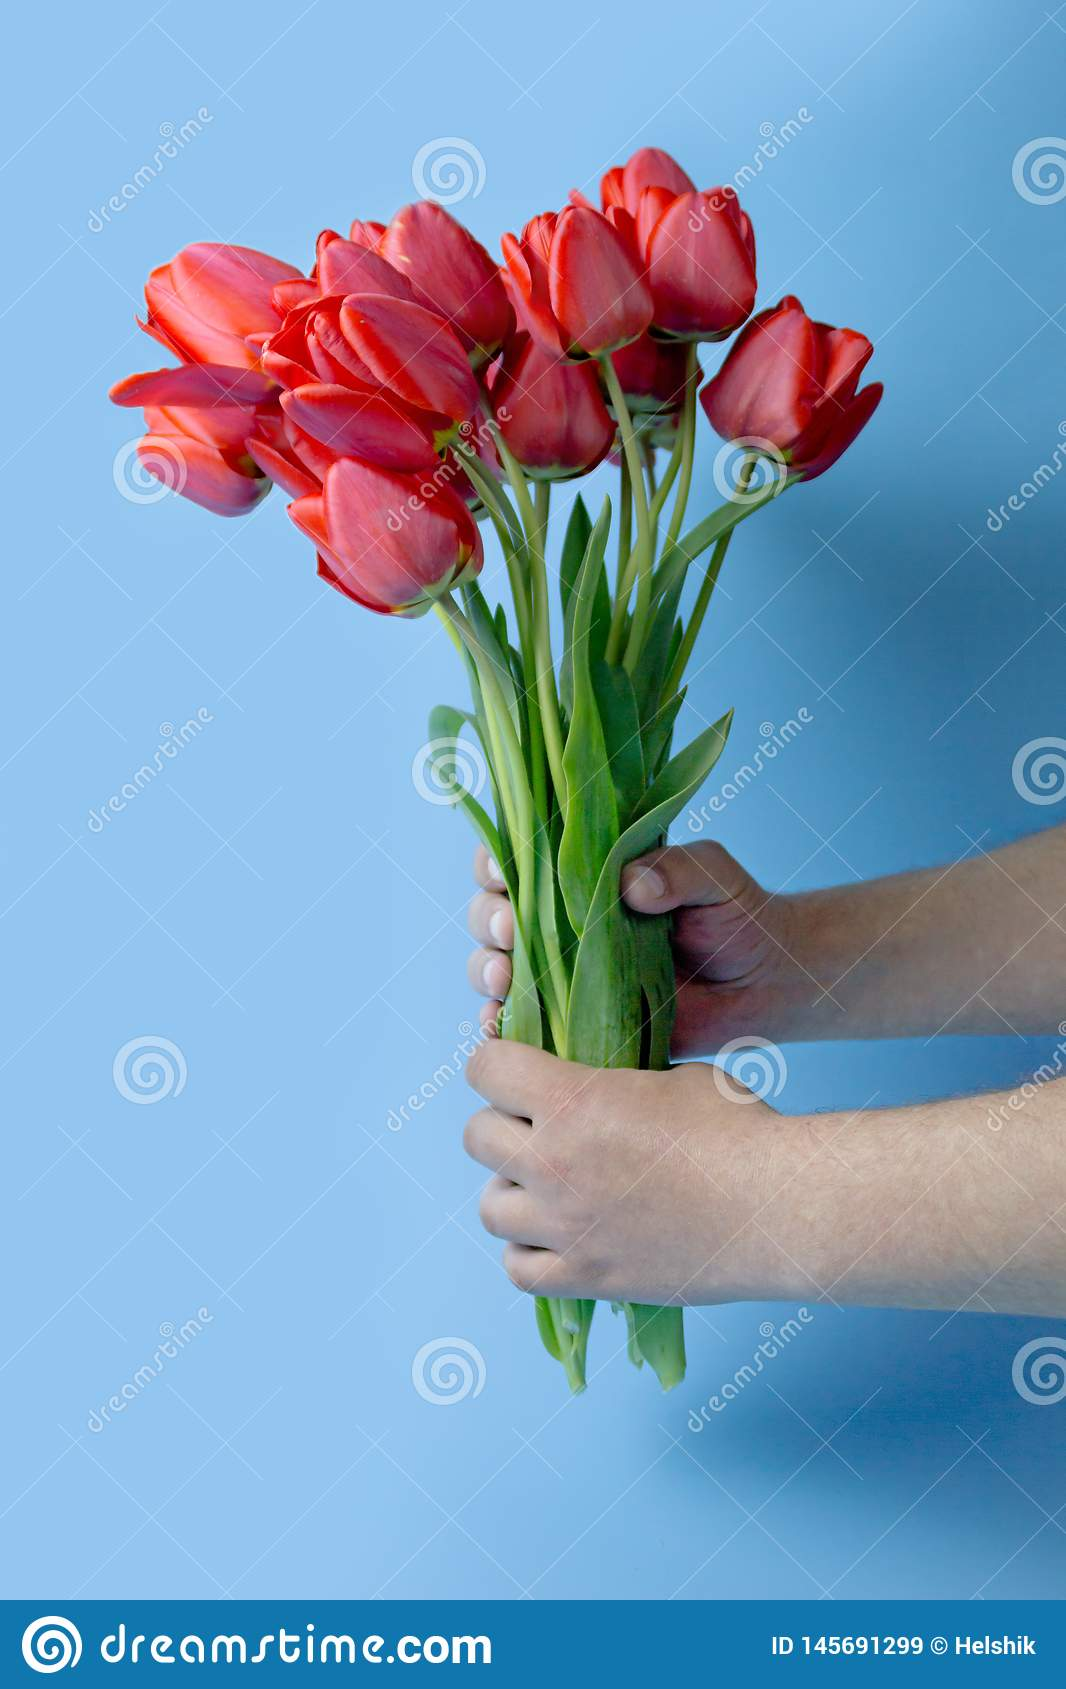 Man`s hand reaching out a bunch of yellow tulips on blue background with copy space